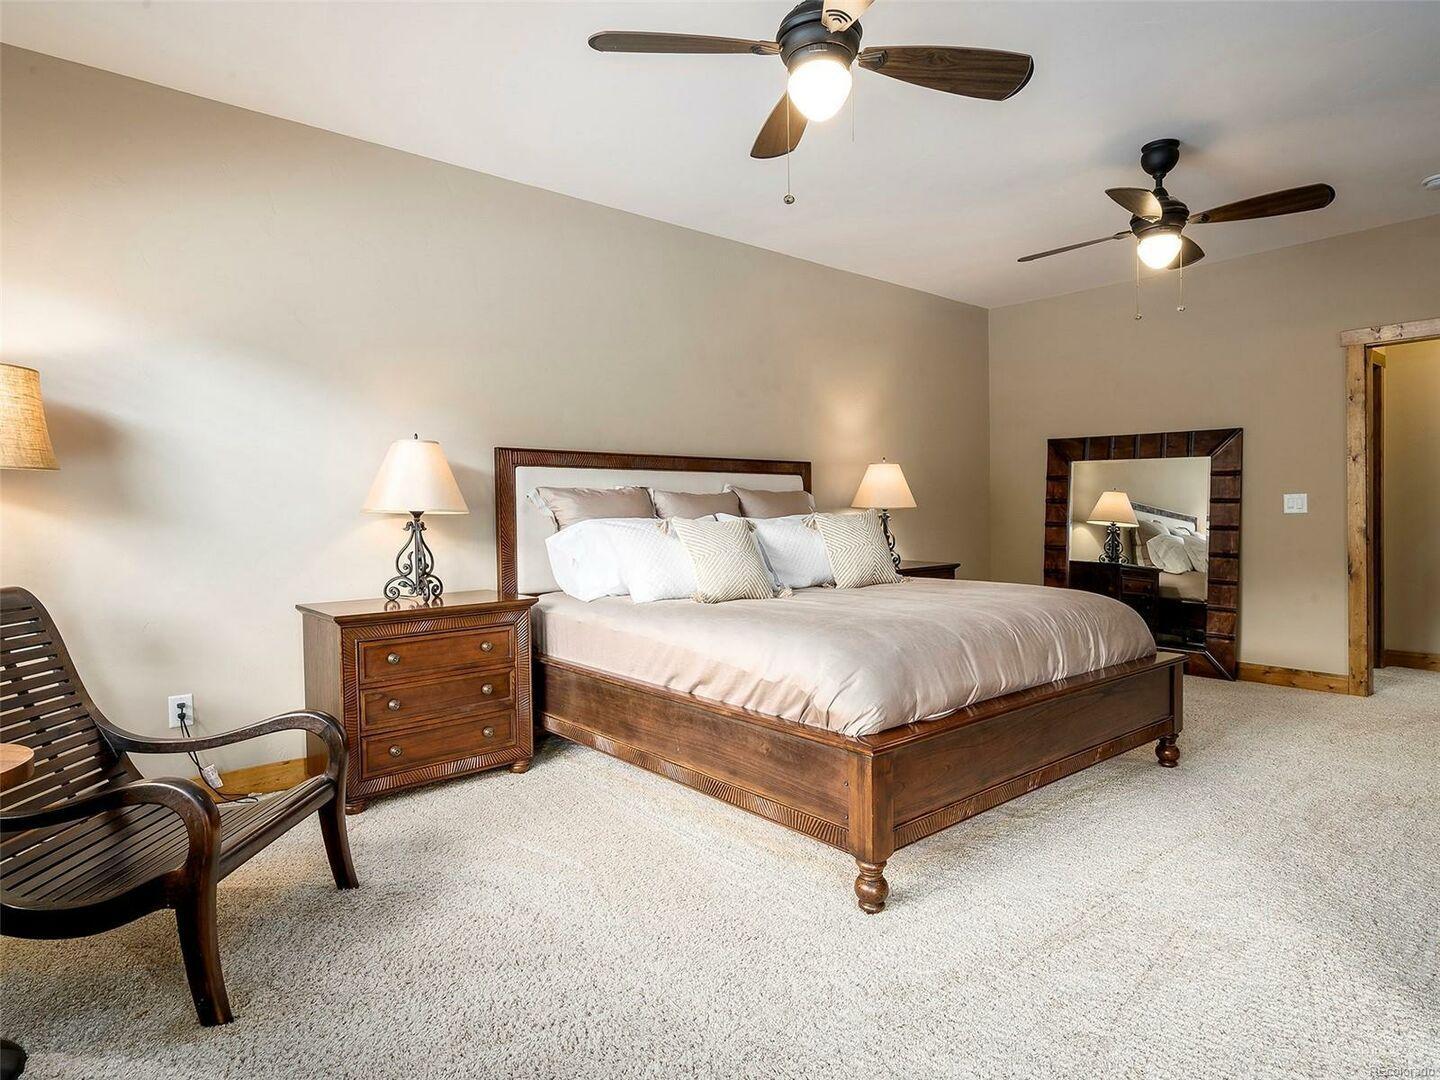 Bedroom with Large Bed, Nightstands, Ceiling Fans, and Chair.